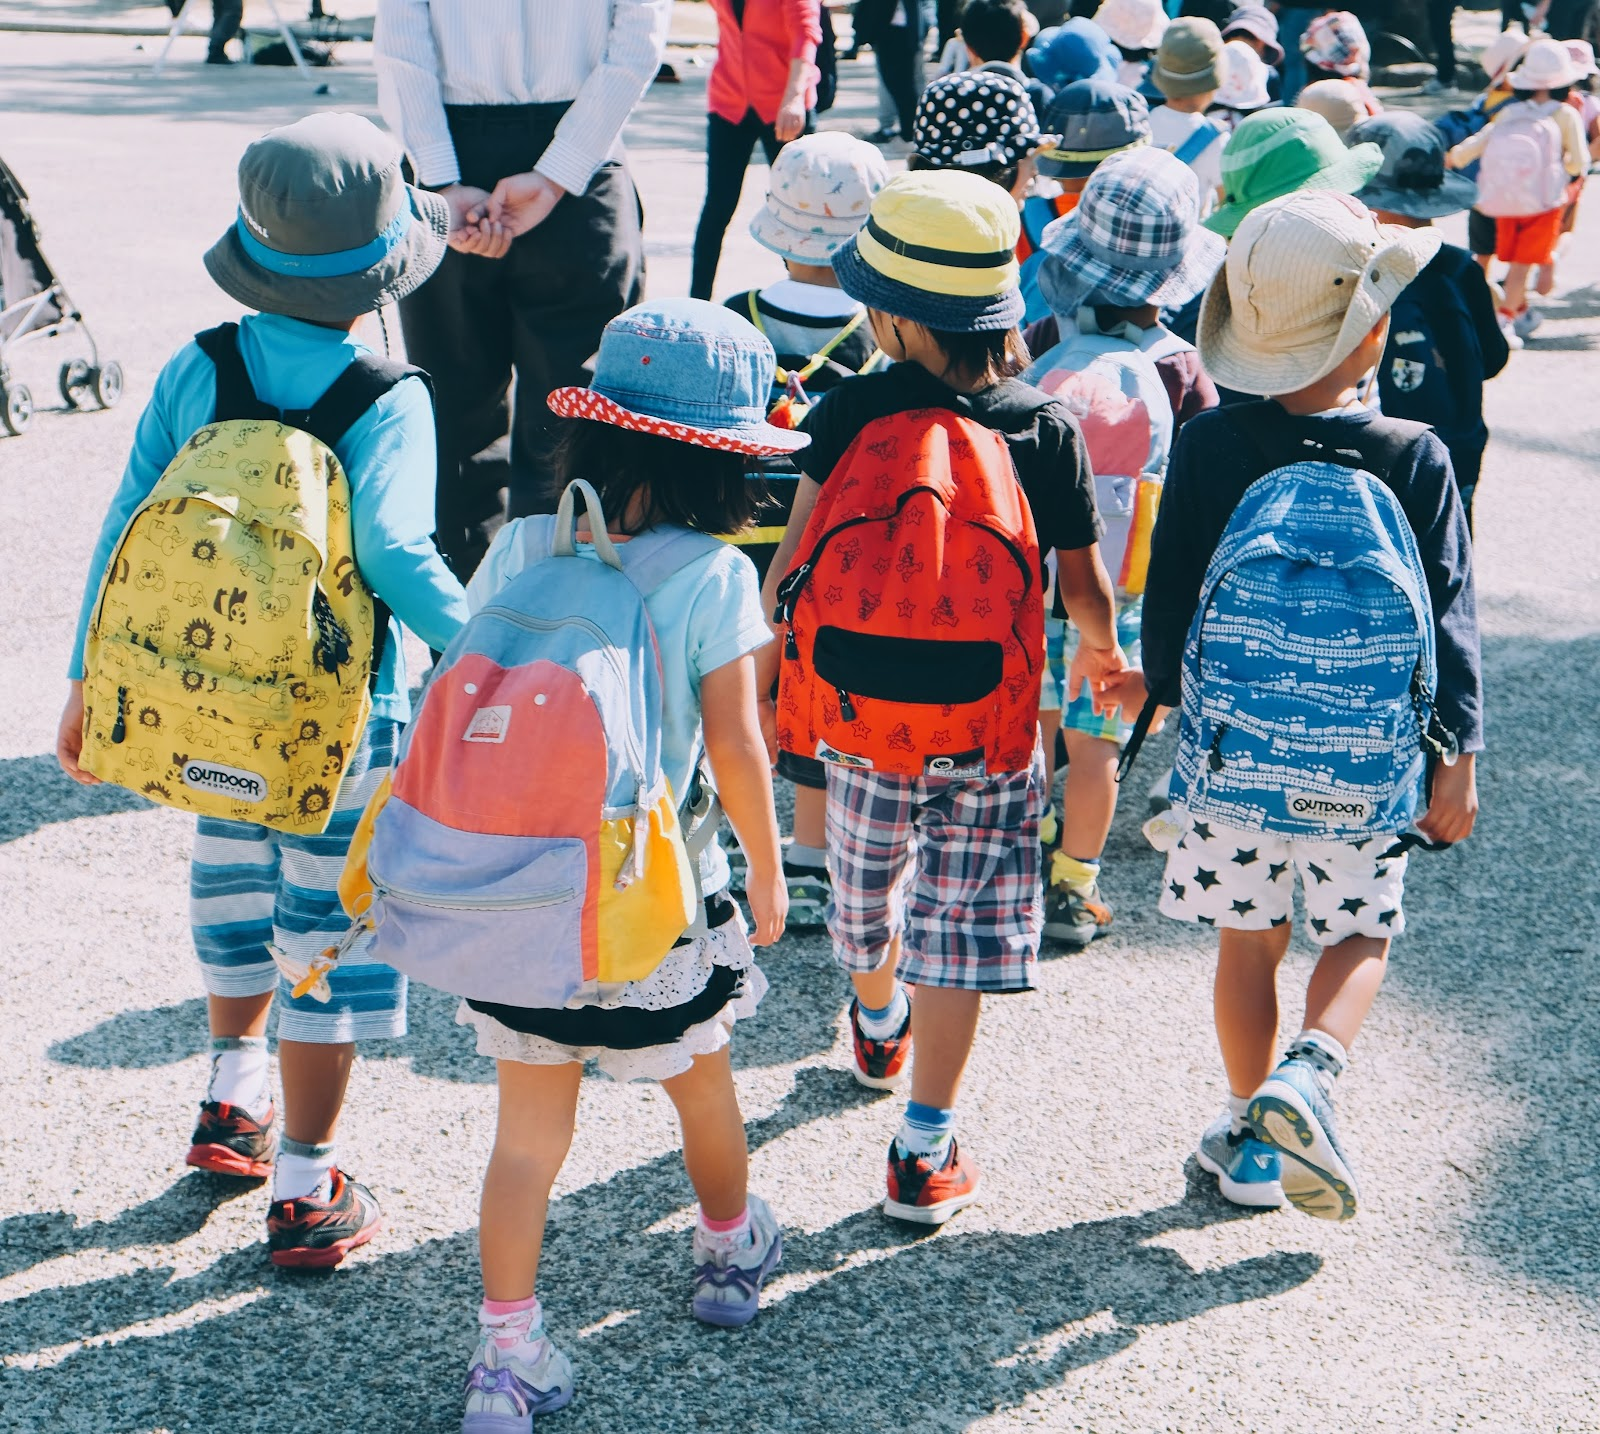 A single file line of elementary students with backpacks travels alongside several teachers.